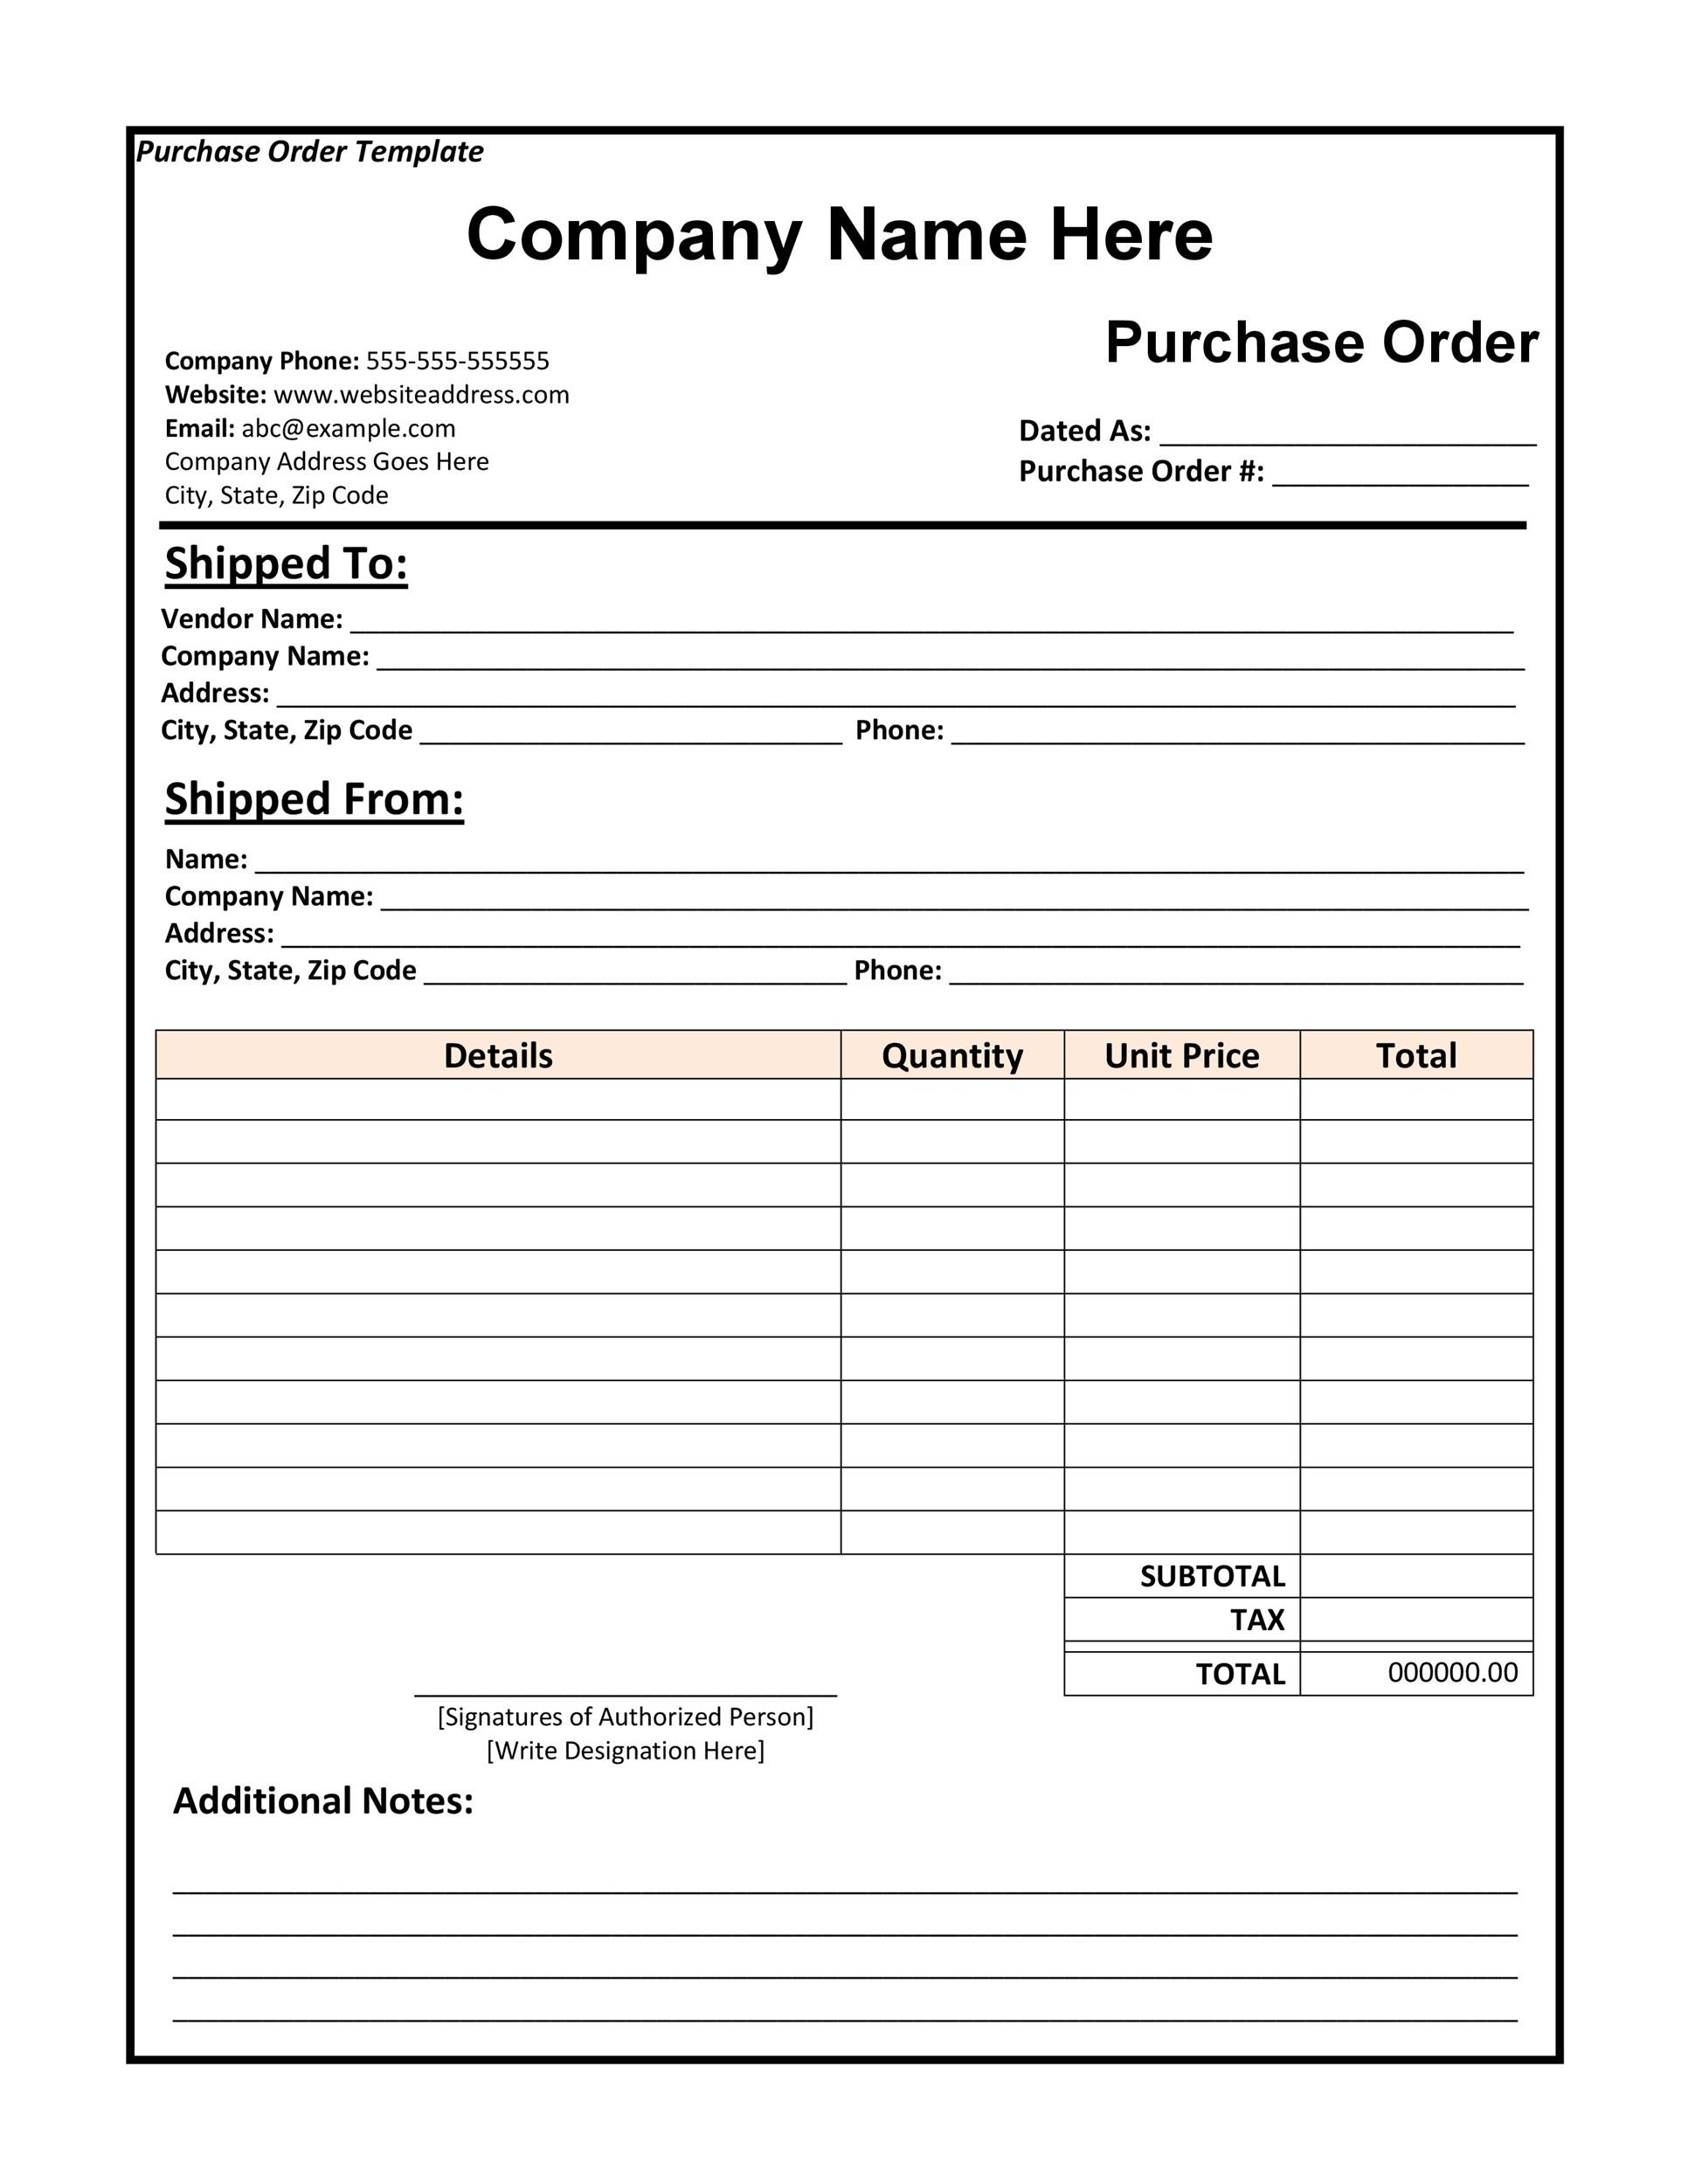 Free Purchase Order Templates In Word  Excel